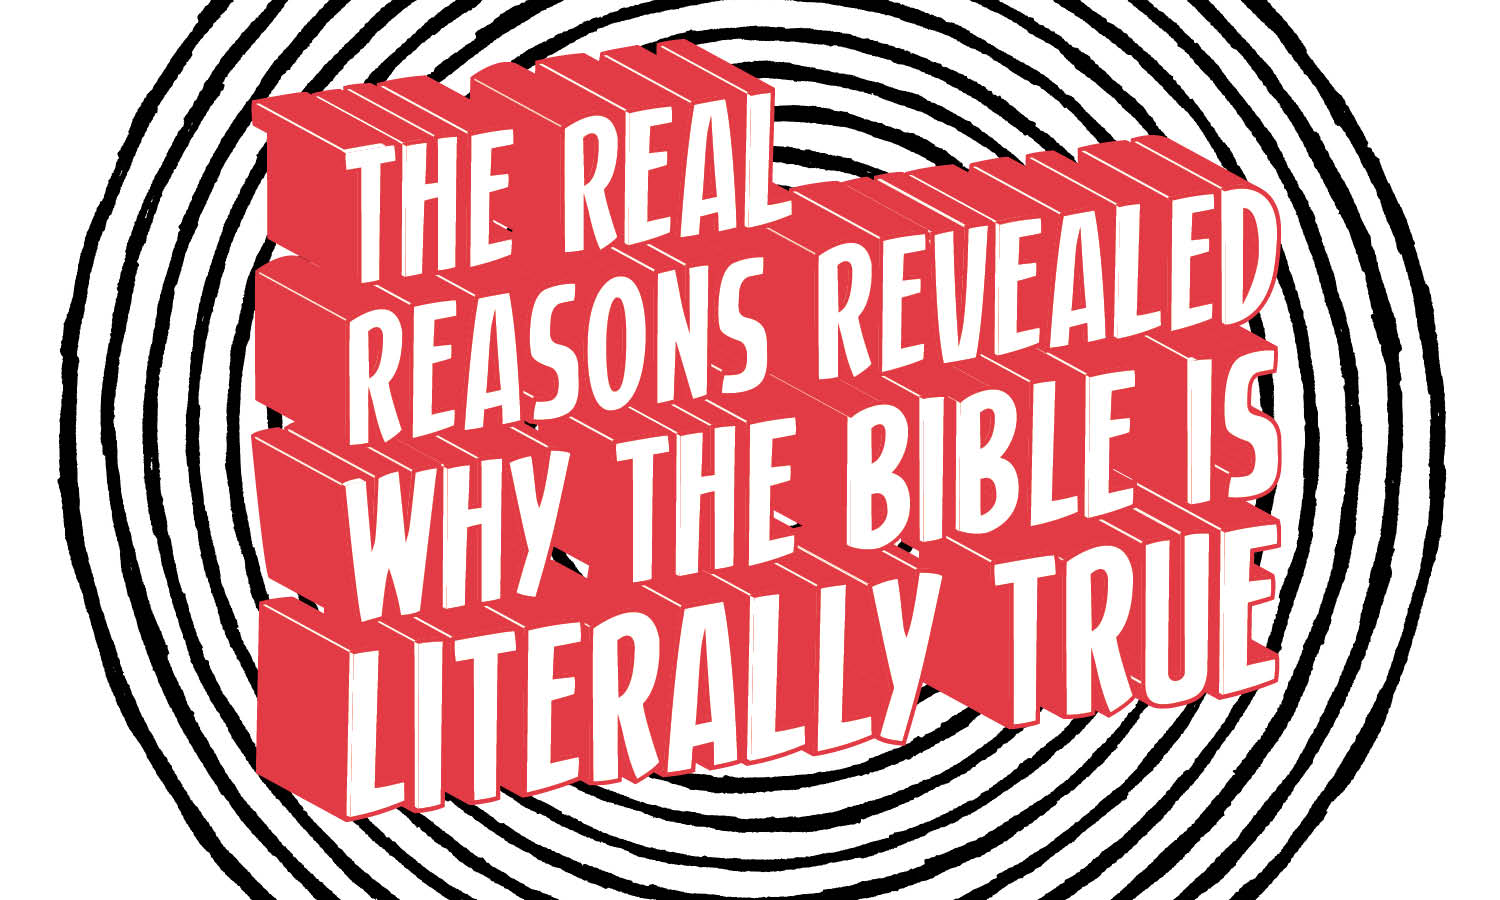 The Real Reasons Revealed why the Bible is Literally True